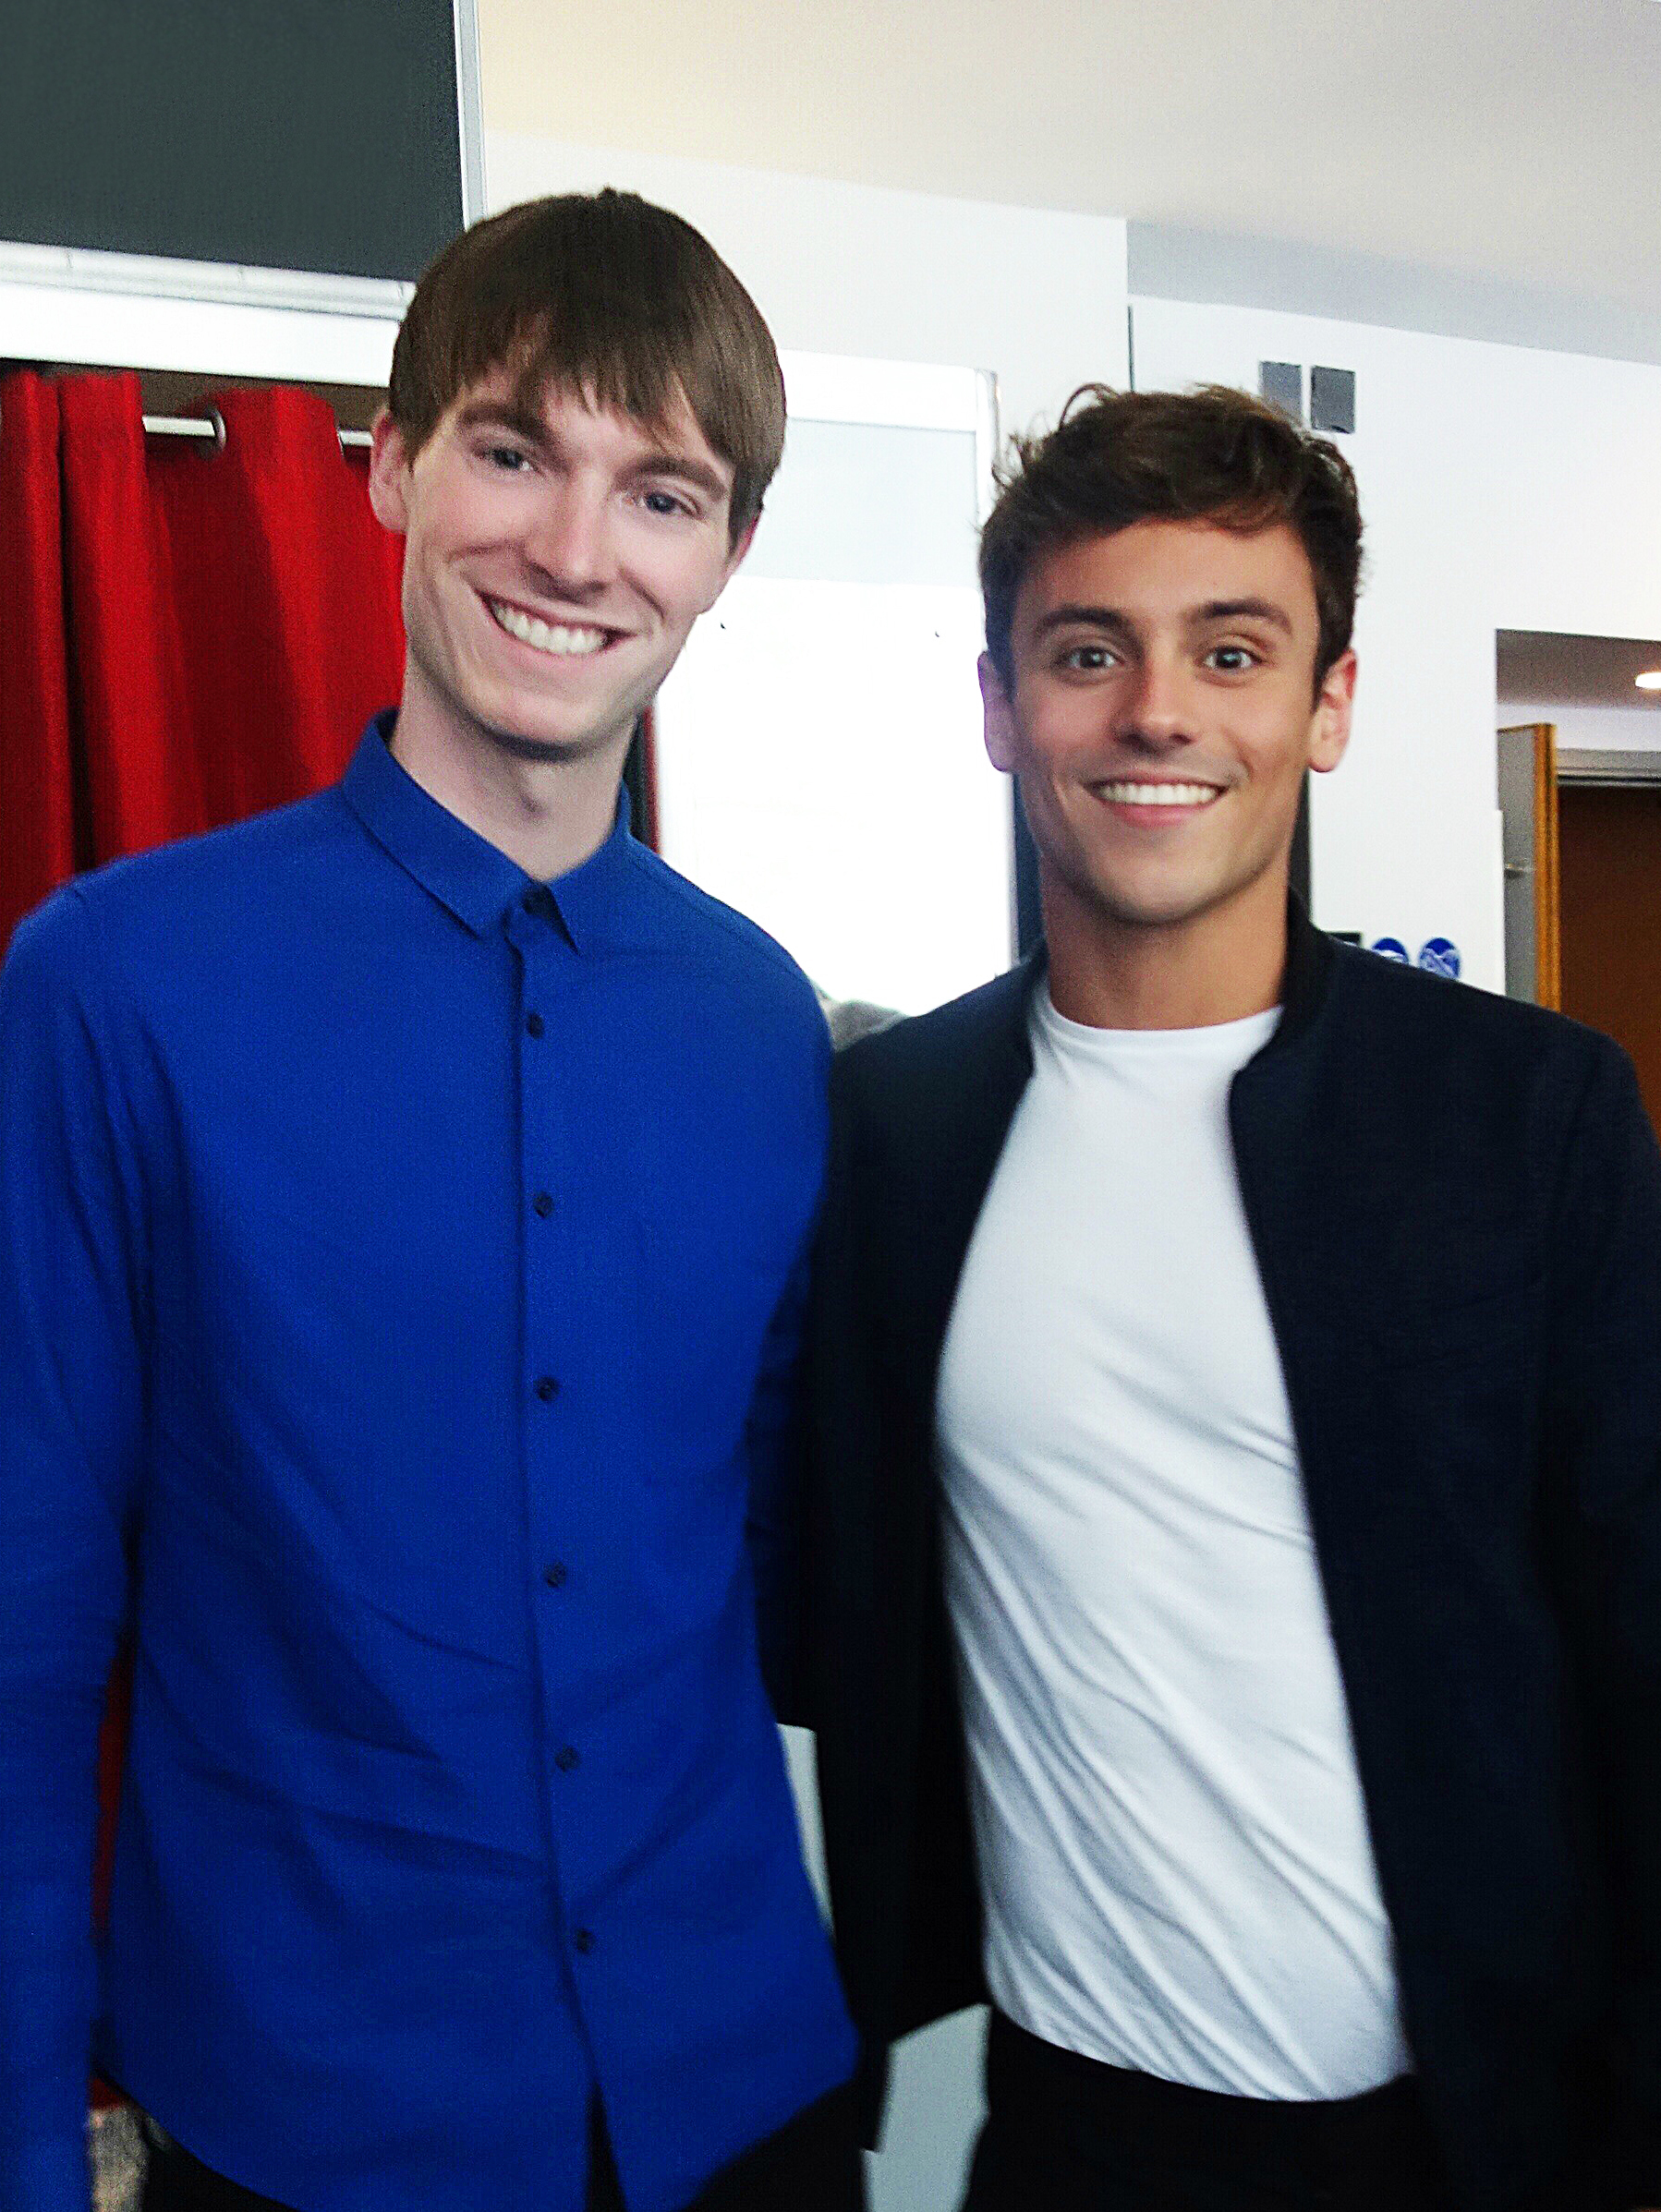 Richard Bronwlie-Marshall & Tom Daley